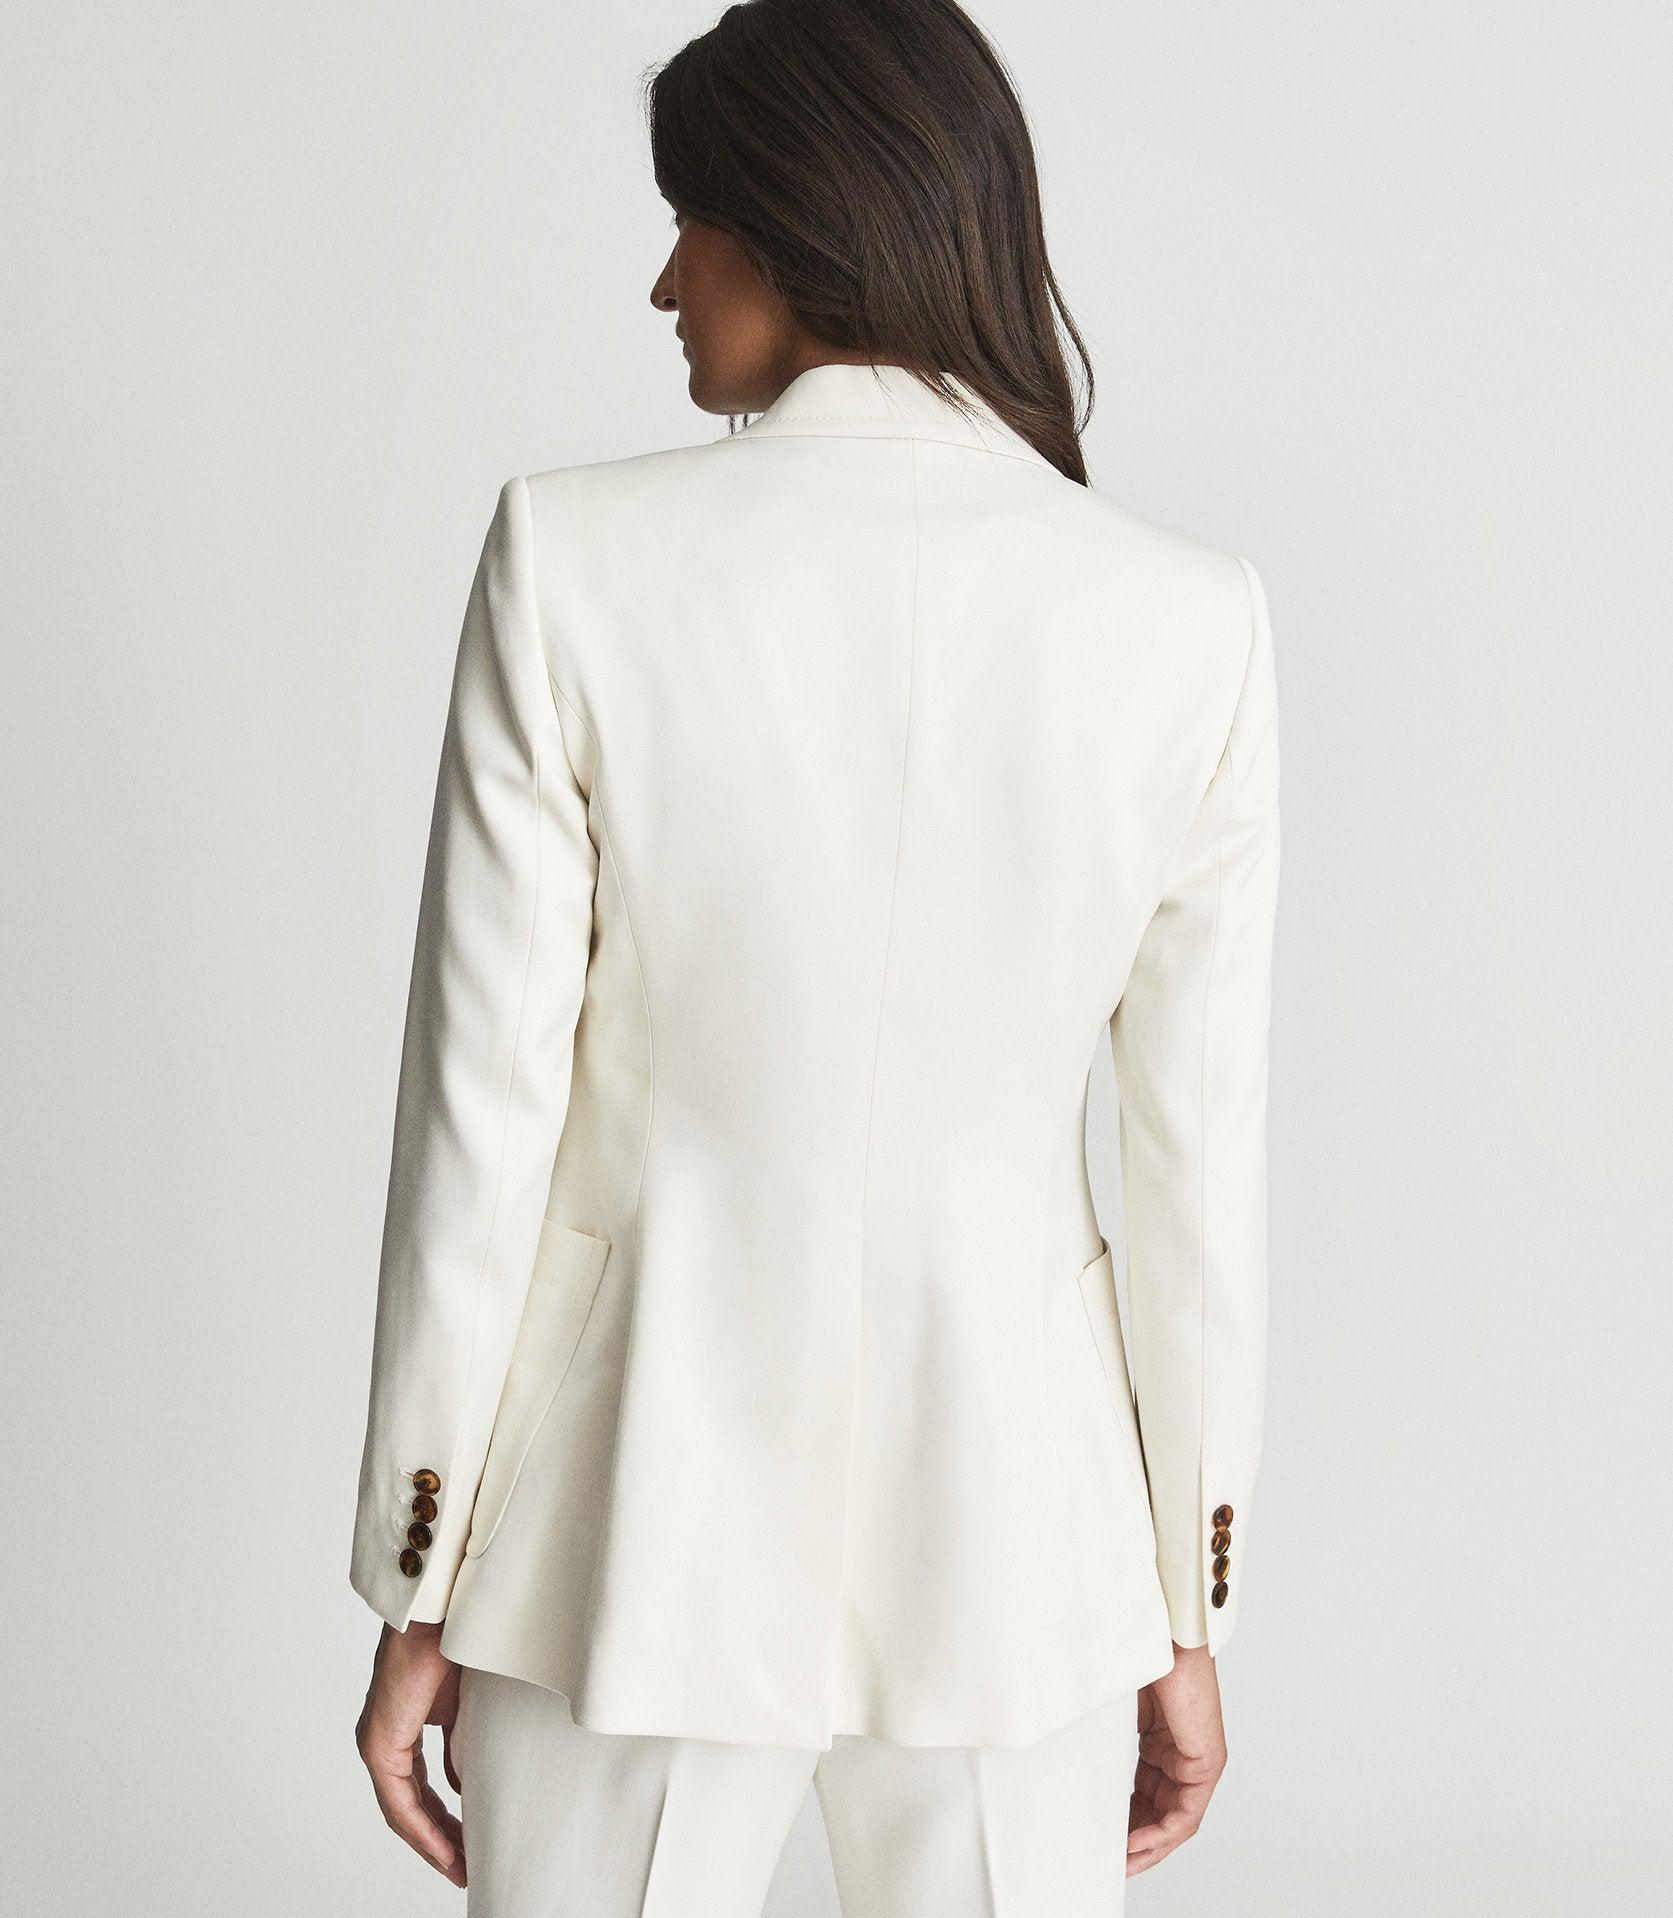 EMBER - TAILORED SINGLE BREASTED BLAZER 3